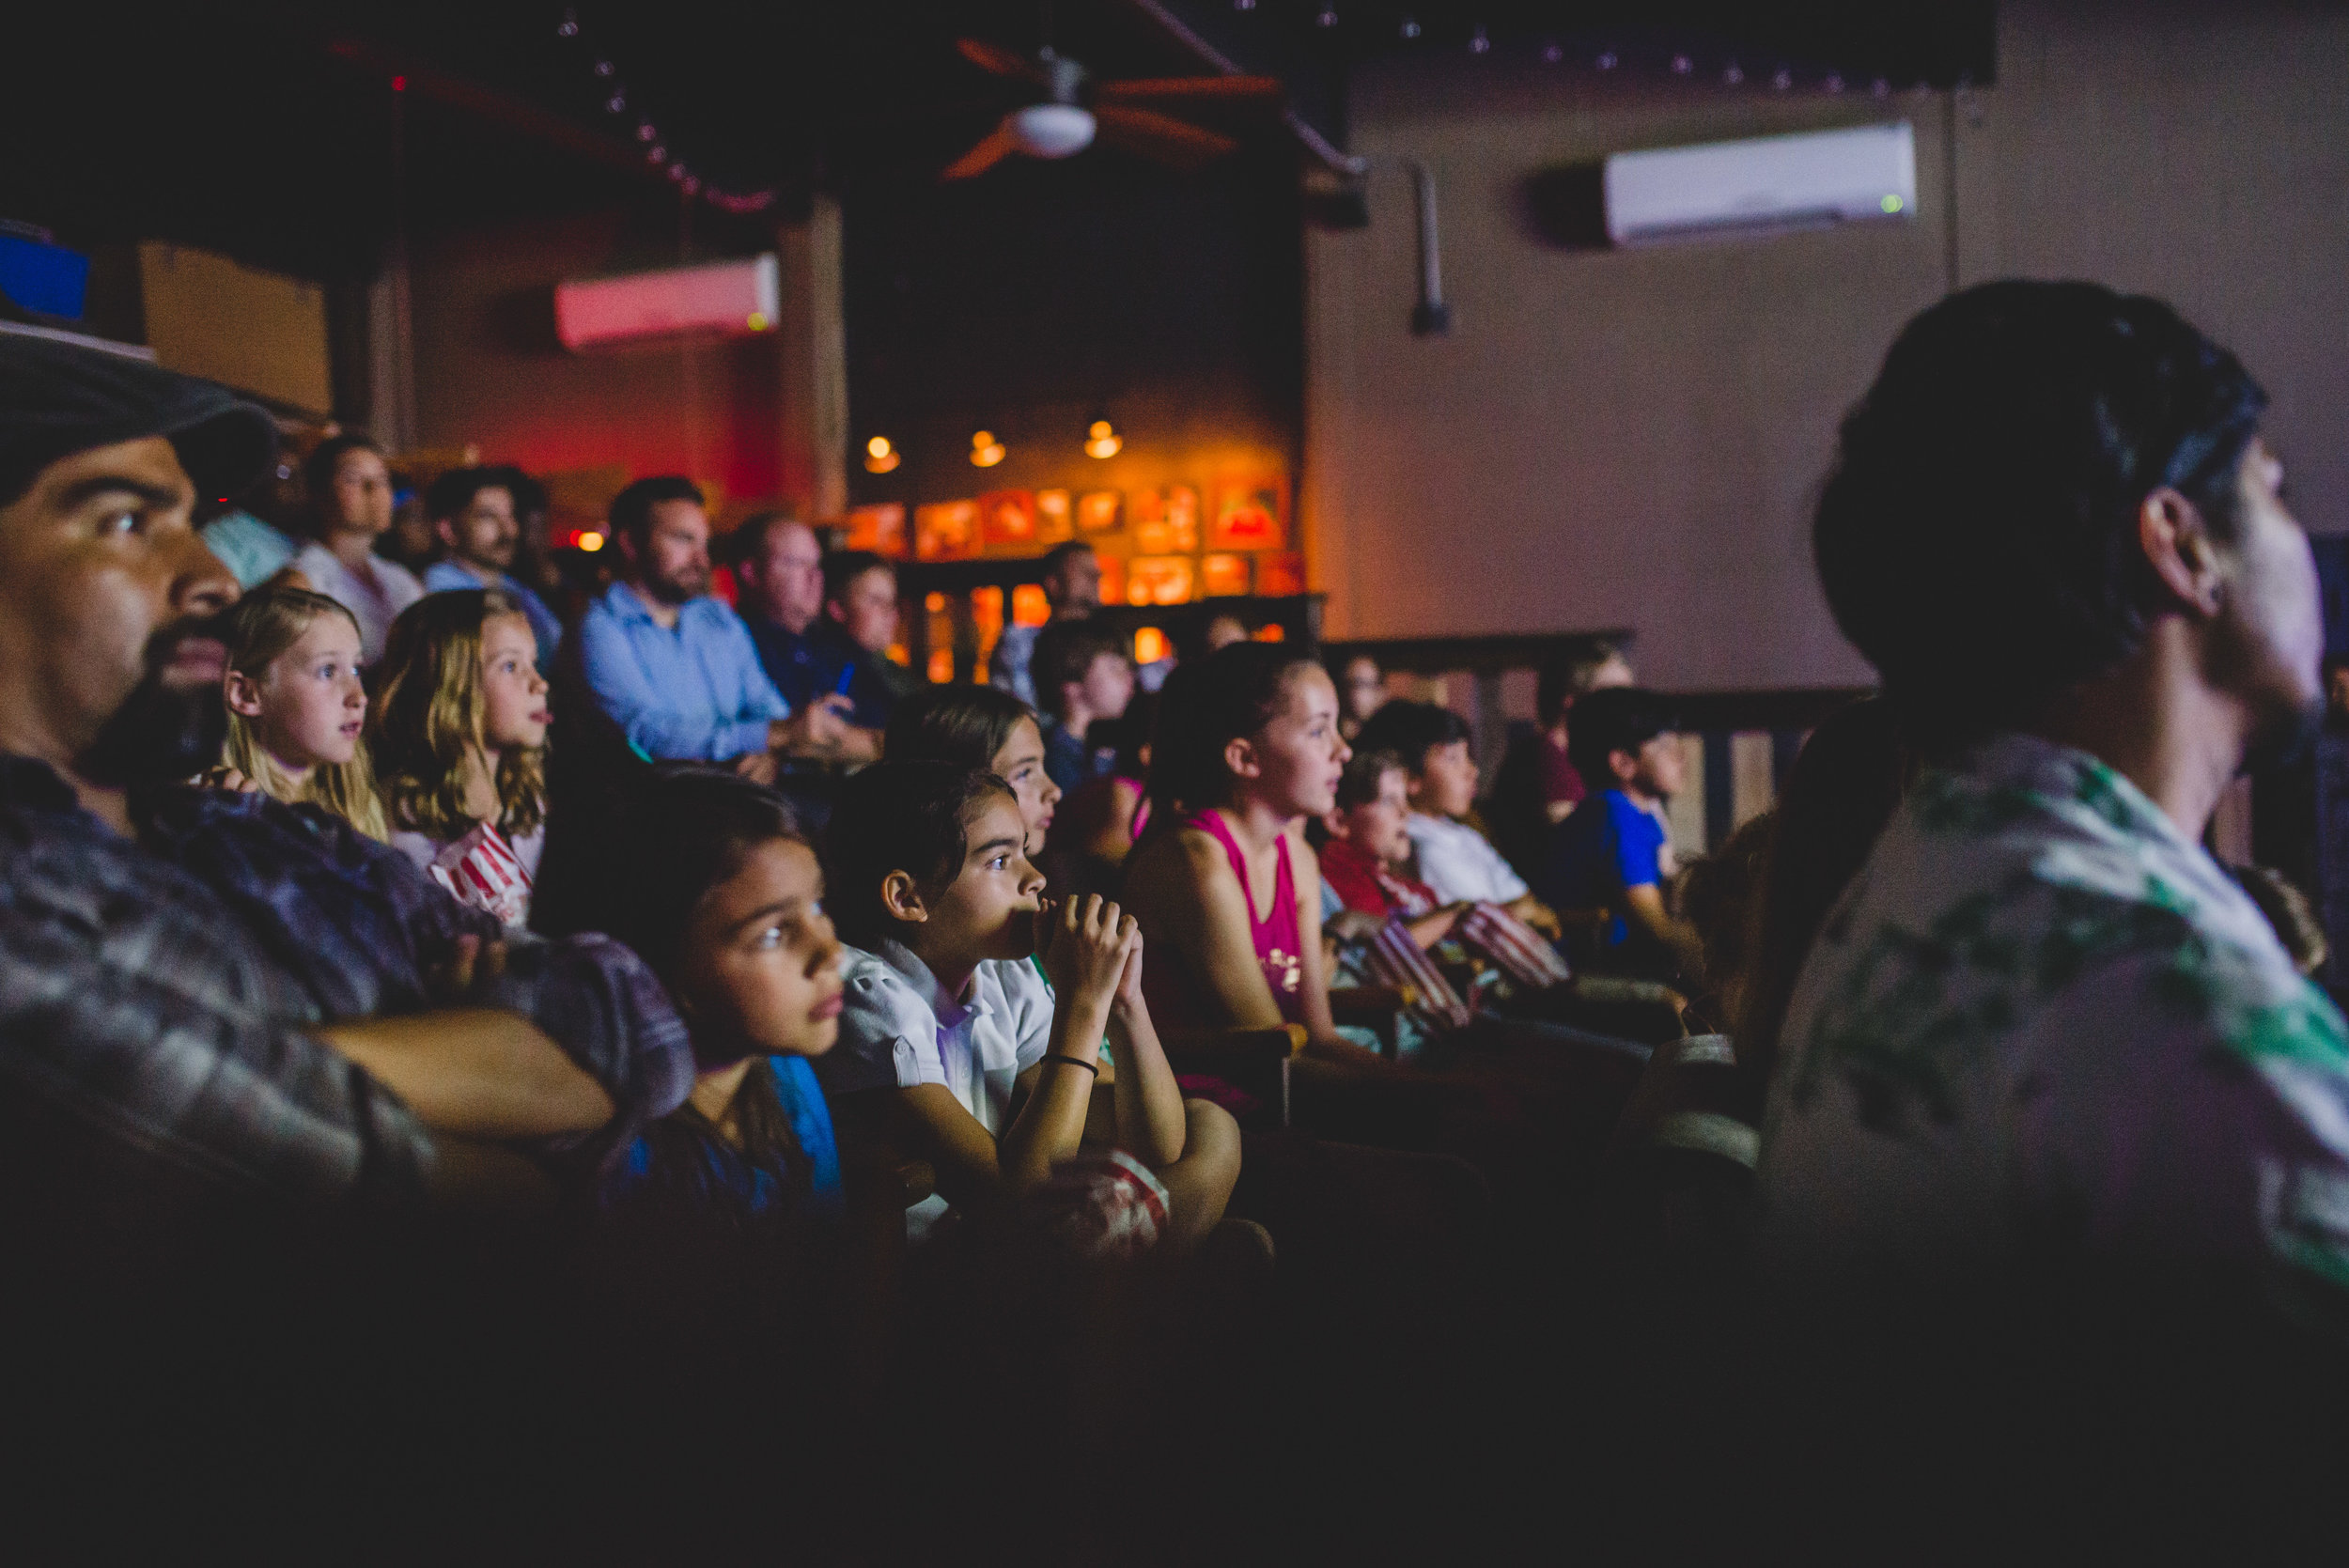 Audience members were captivated by the creative form of storytelling and the lessons taught through the production.